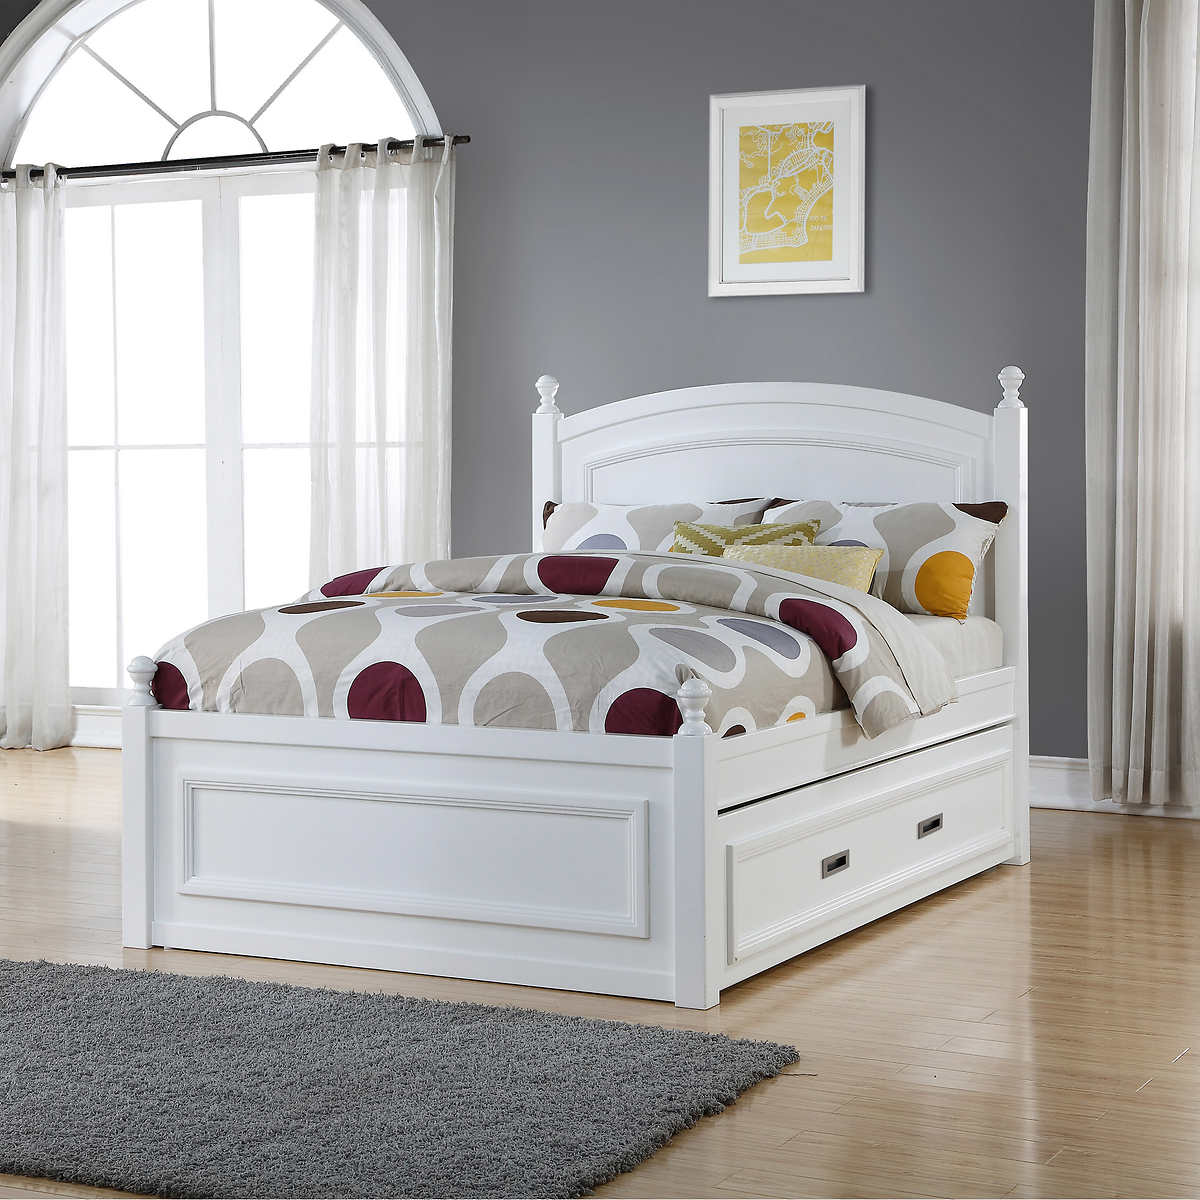 beds  costco - hailey full bed with trundle